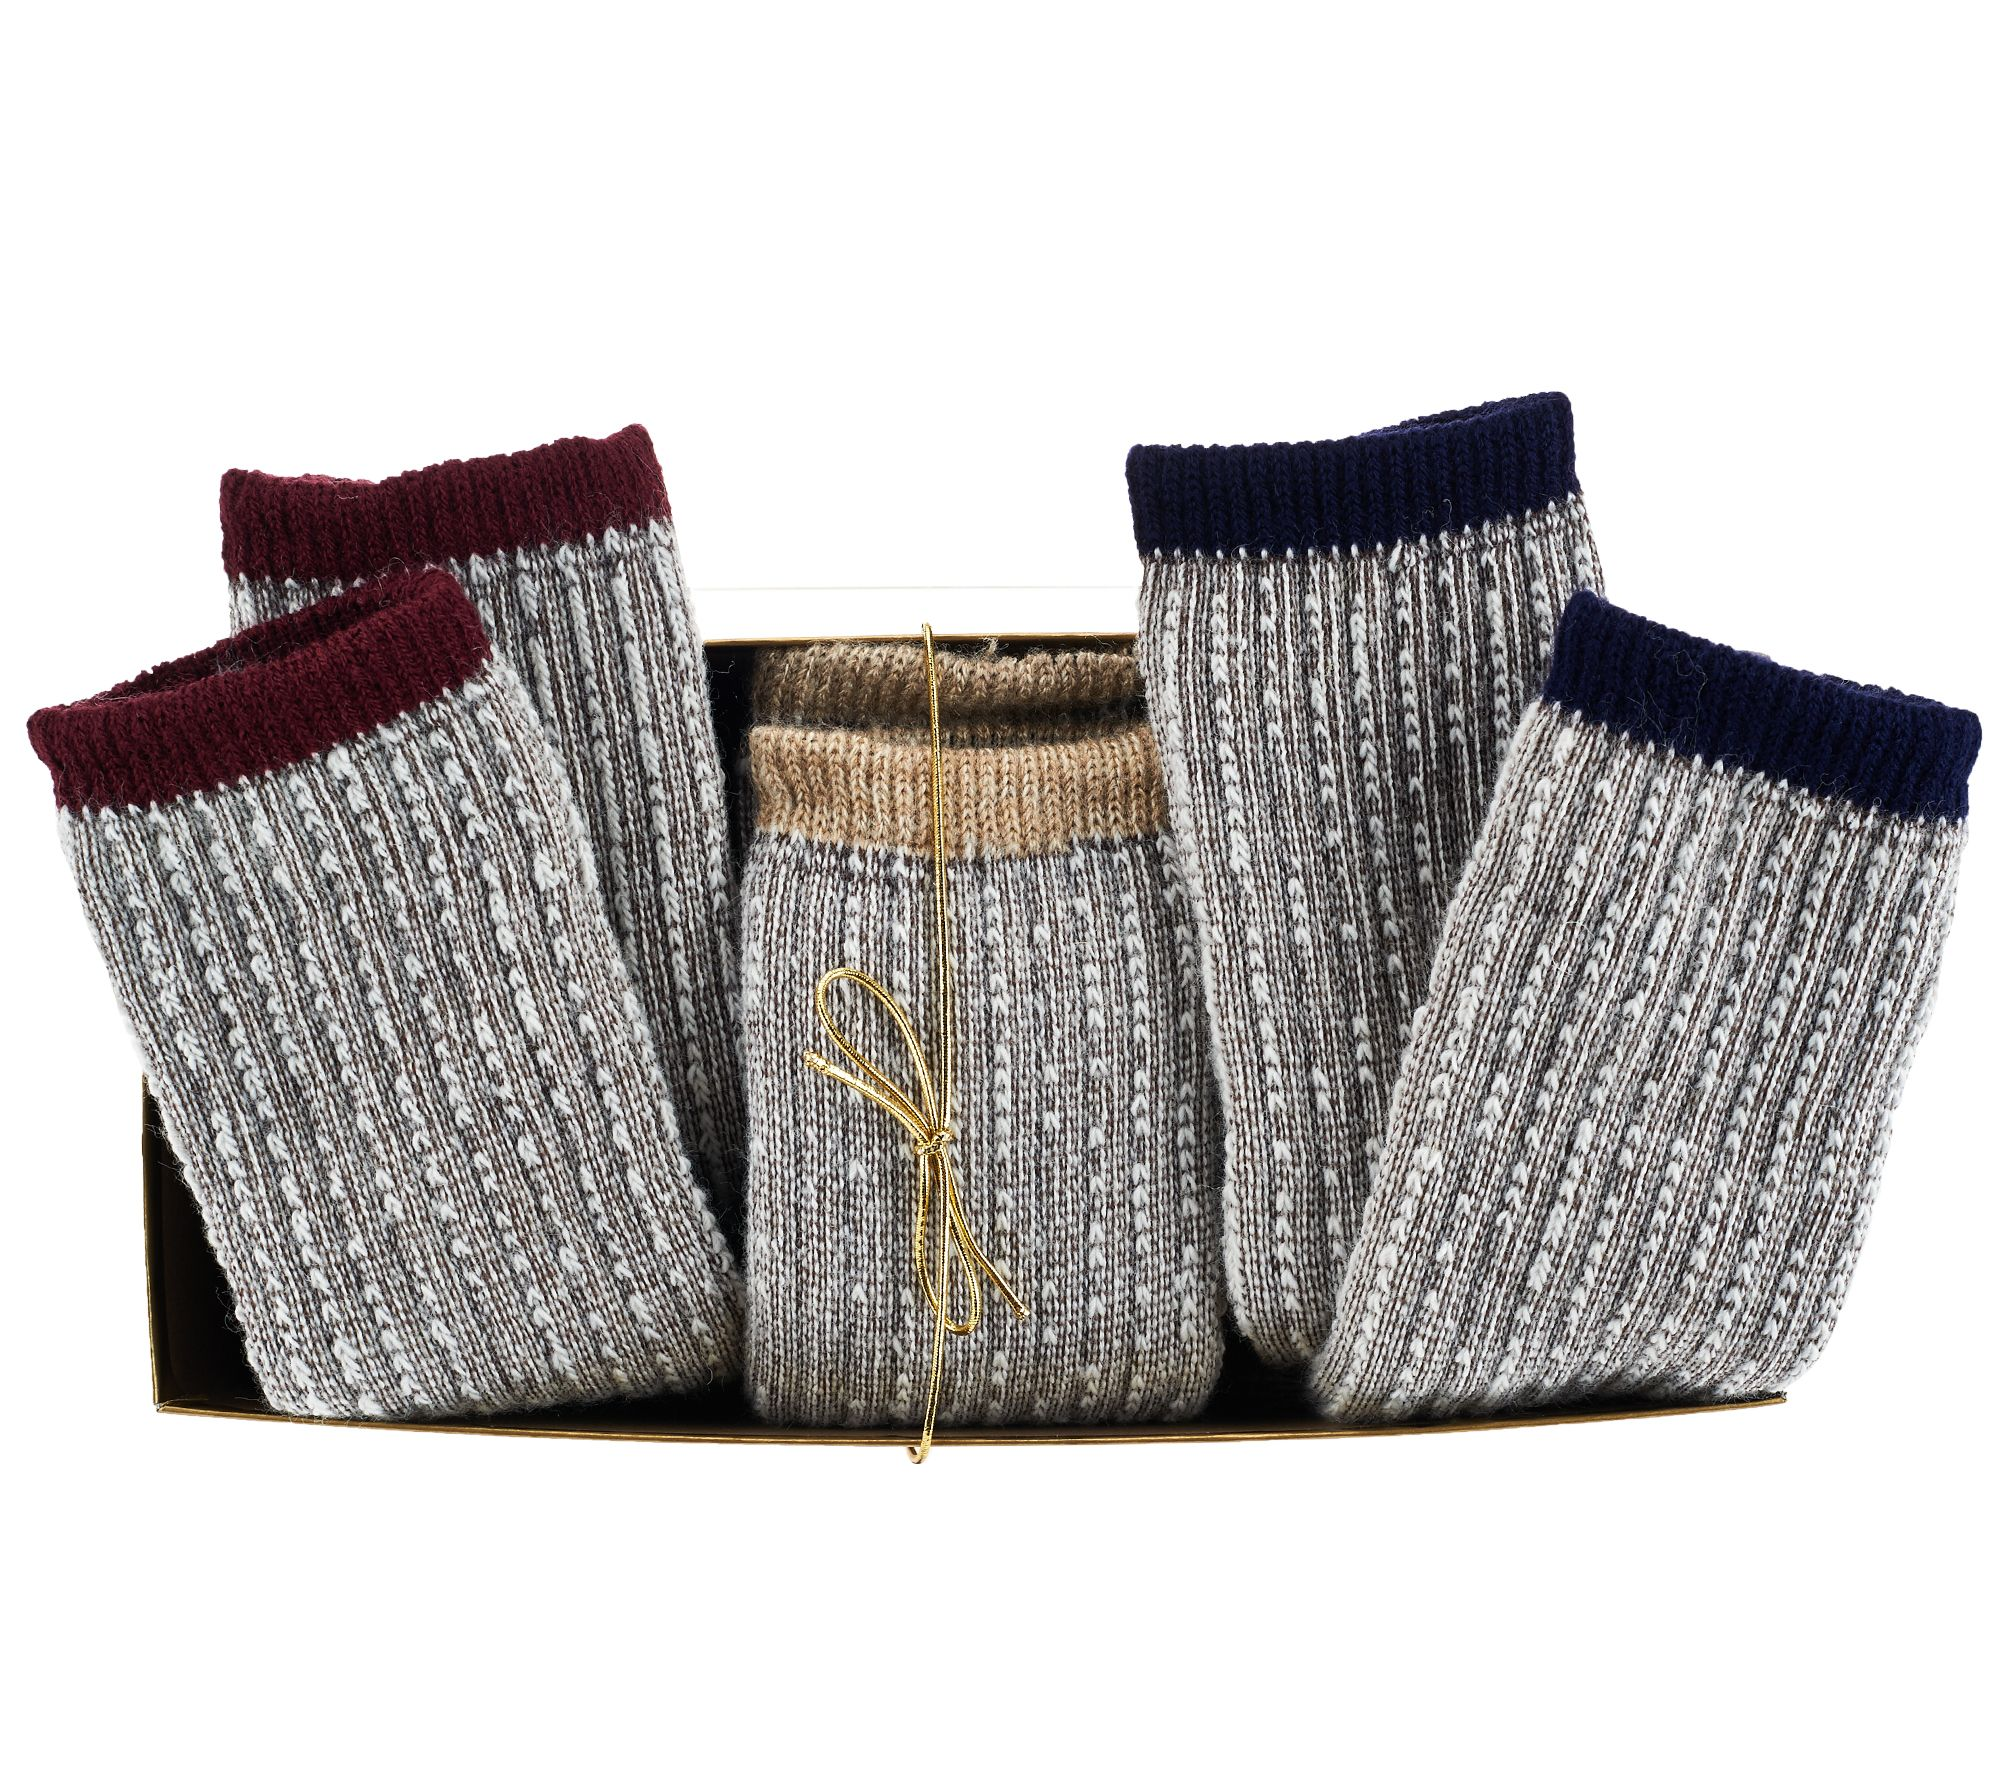 Catawba Set of 3 Merino Wool Blend Socks w/ Gift Box